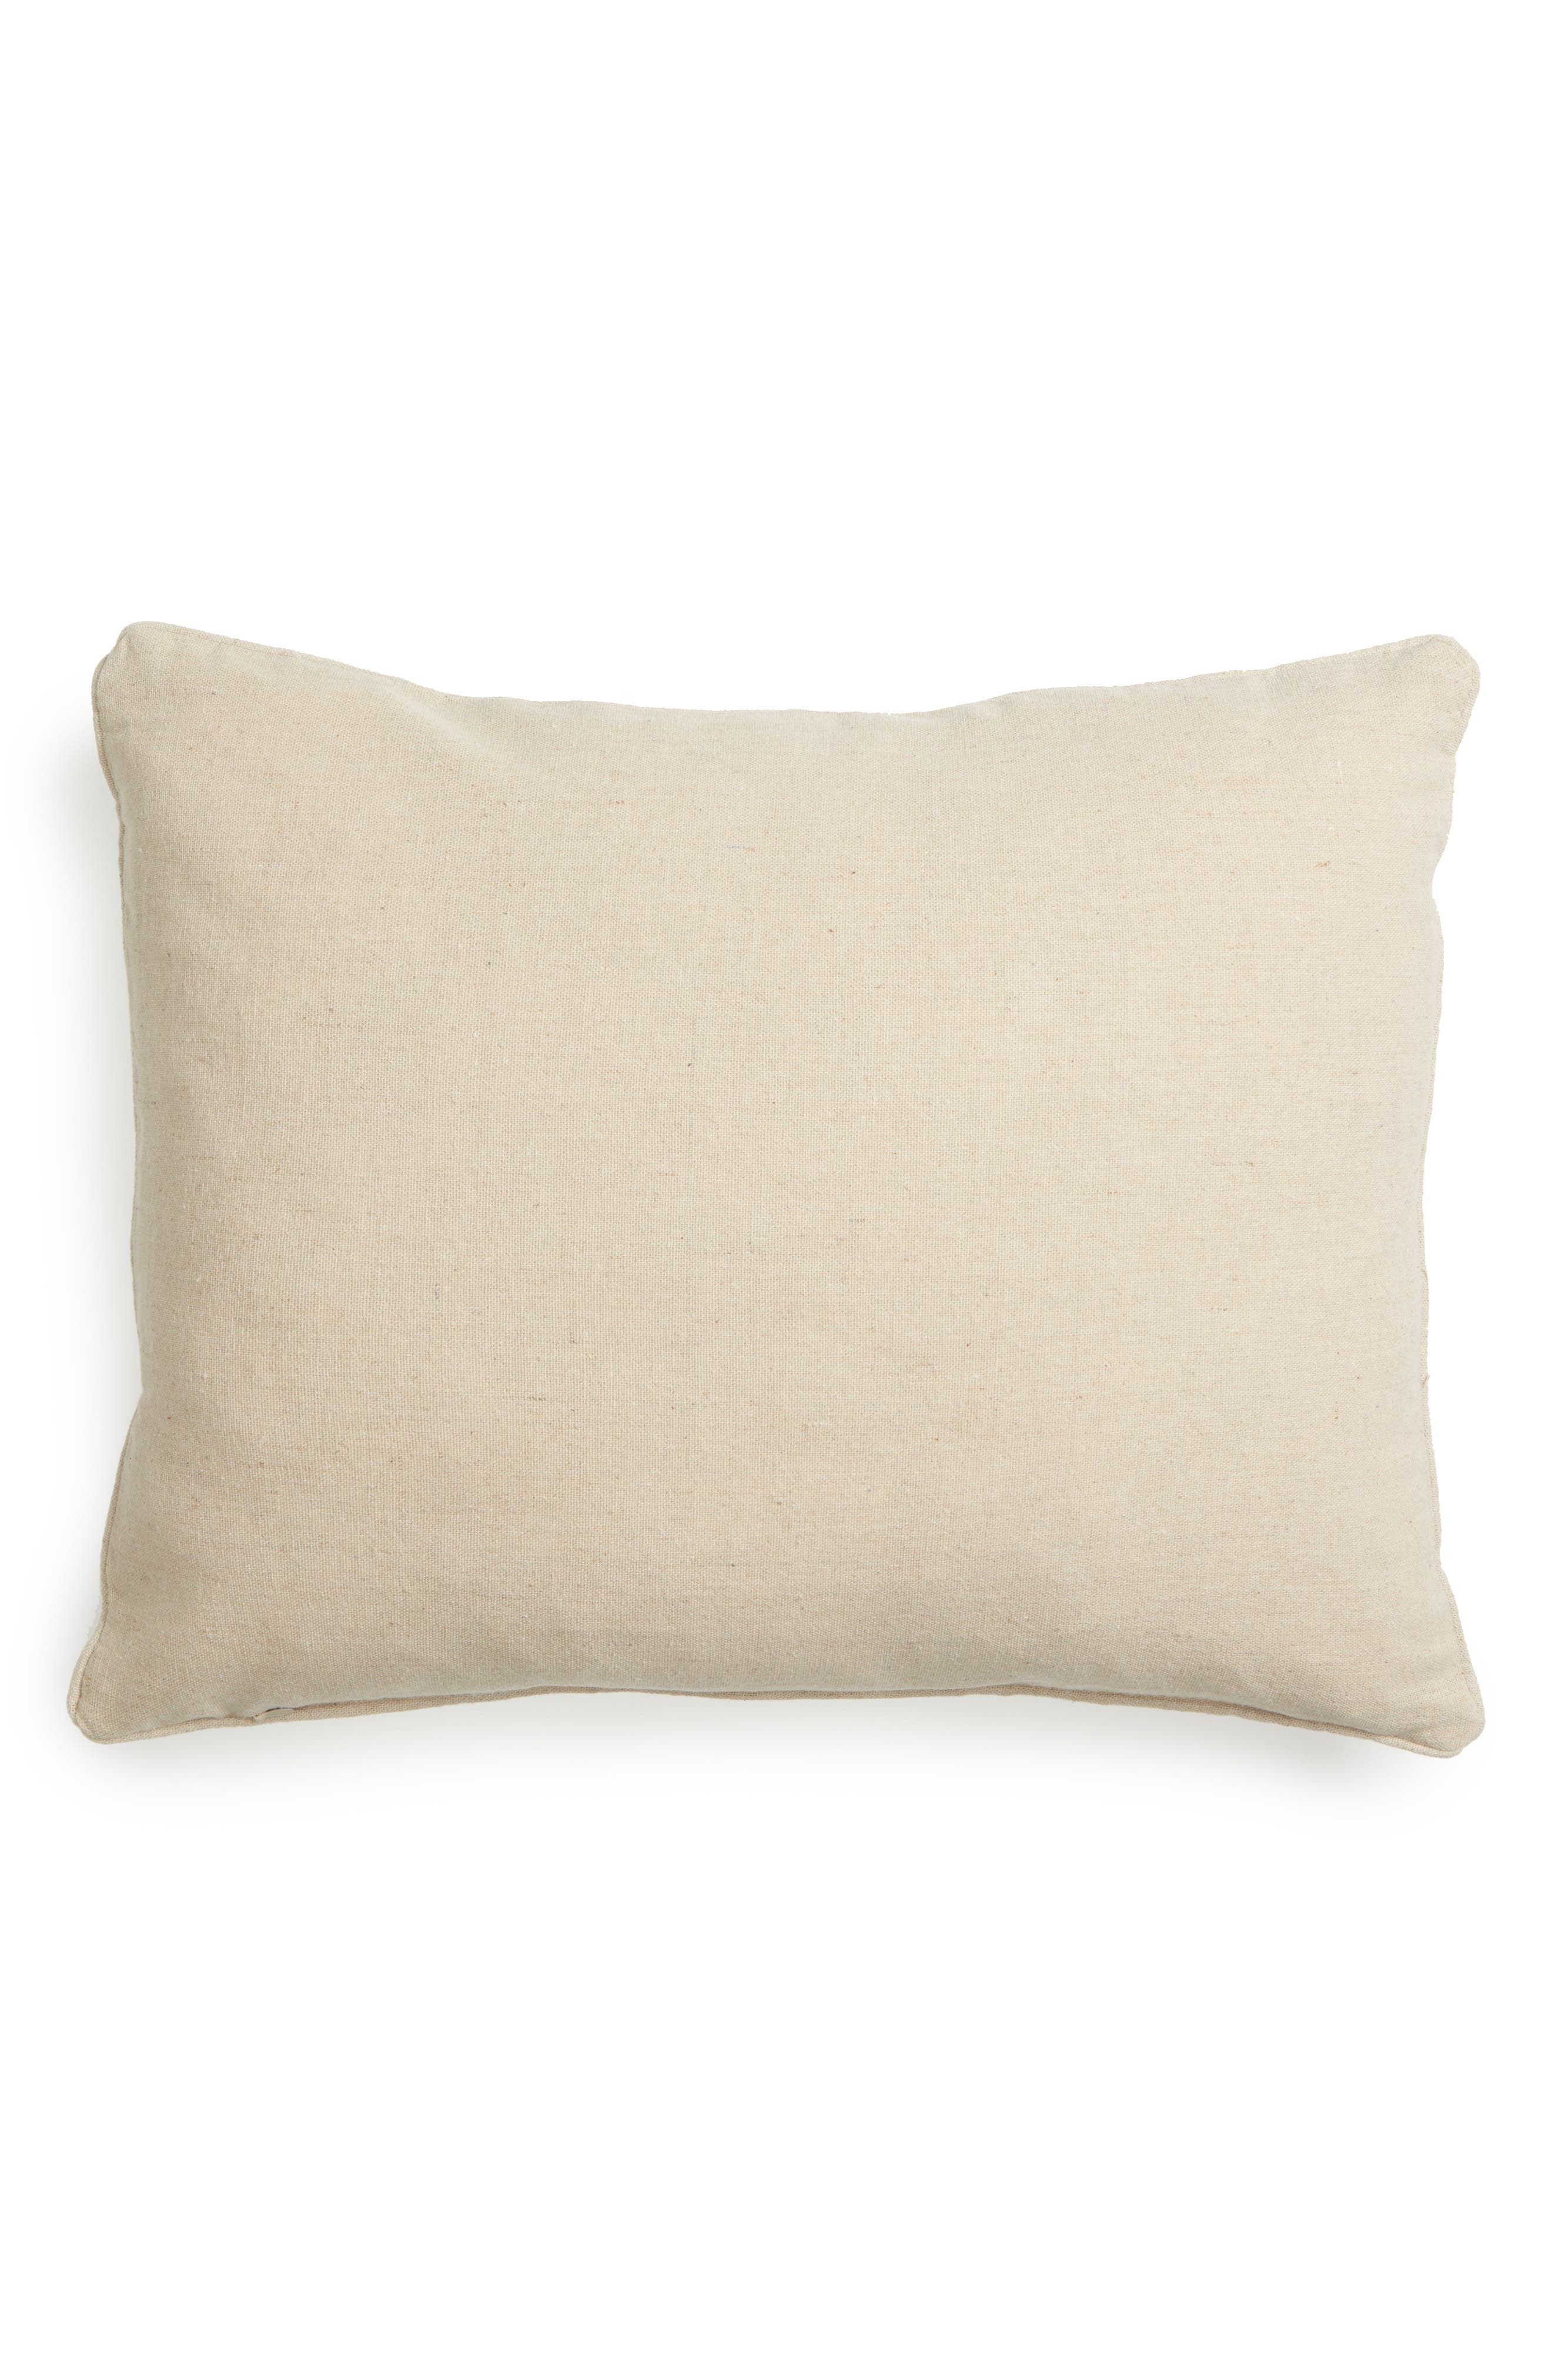 Beckett Embroidered Pillow,                             Alternate thumbnail 2, color,